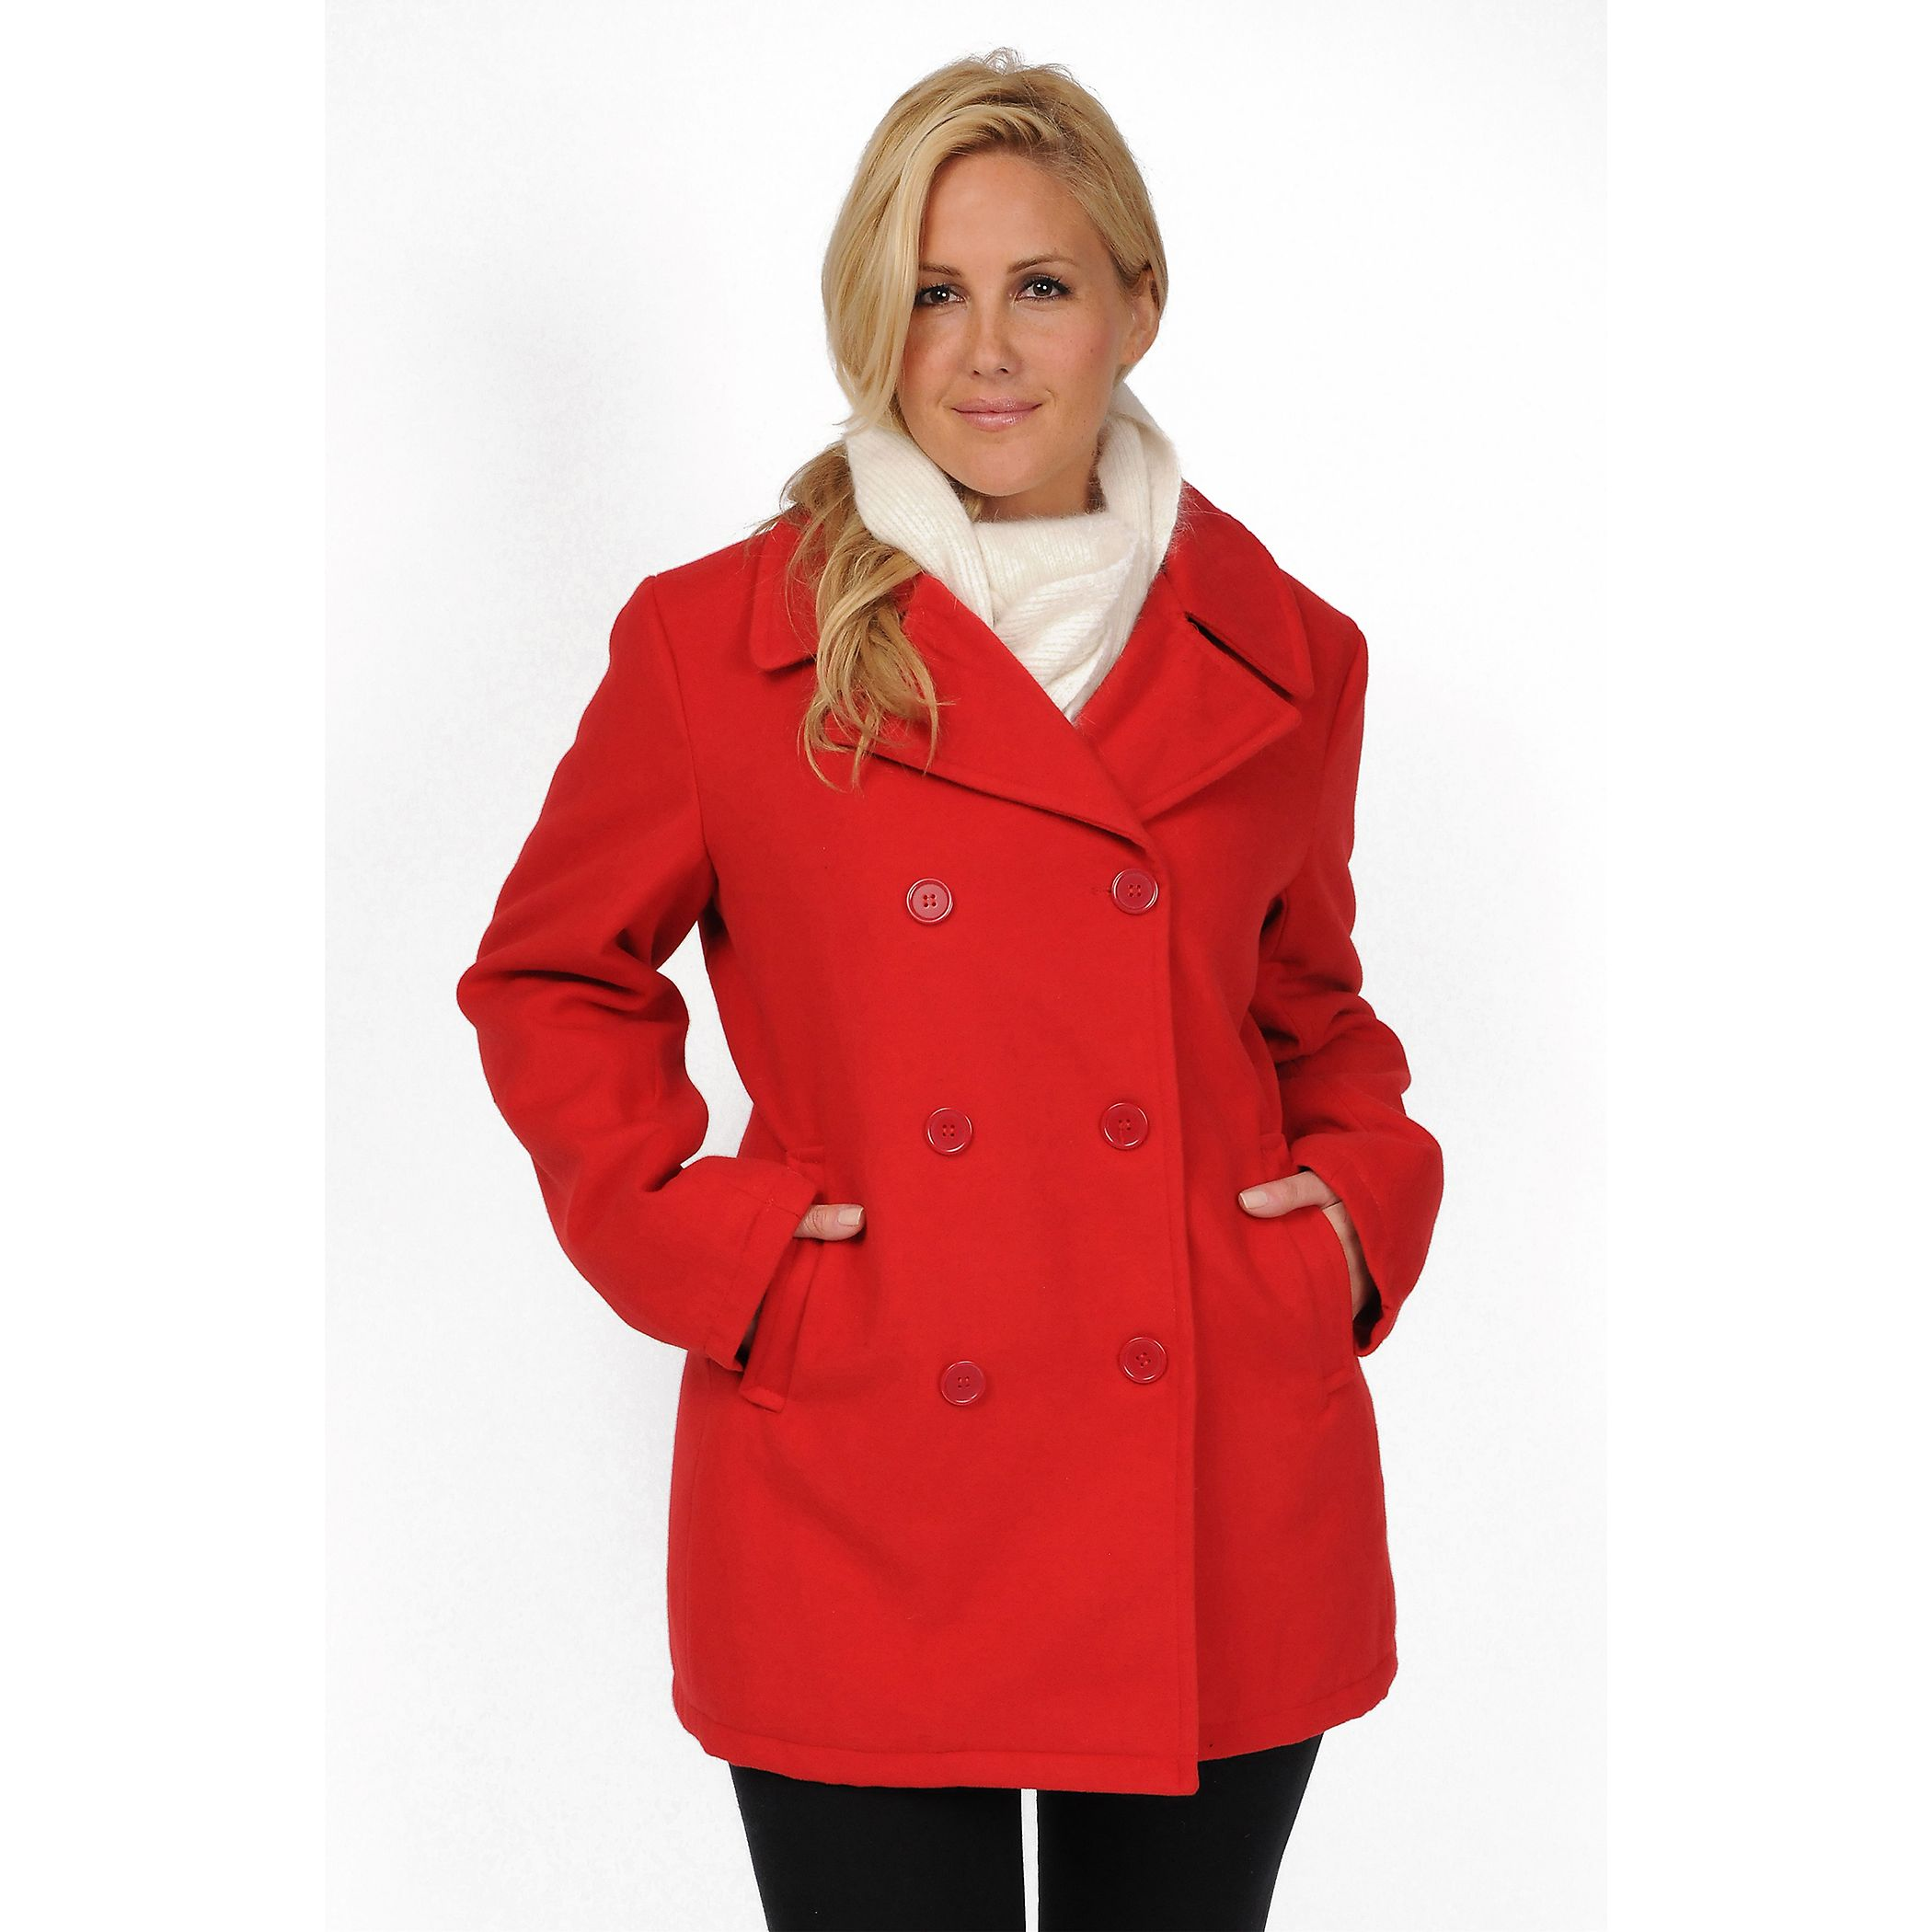 R & O Solid Peacoat - Women's Plus